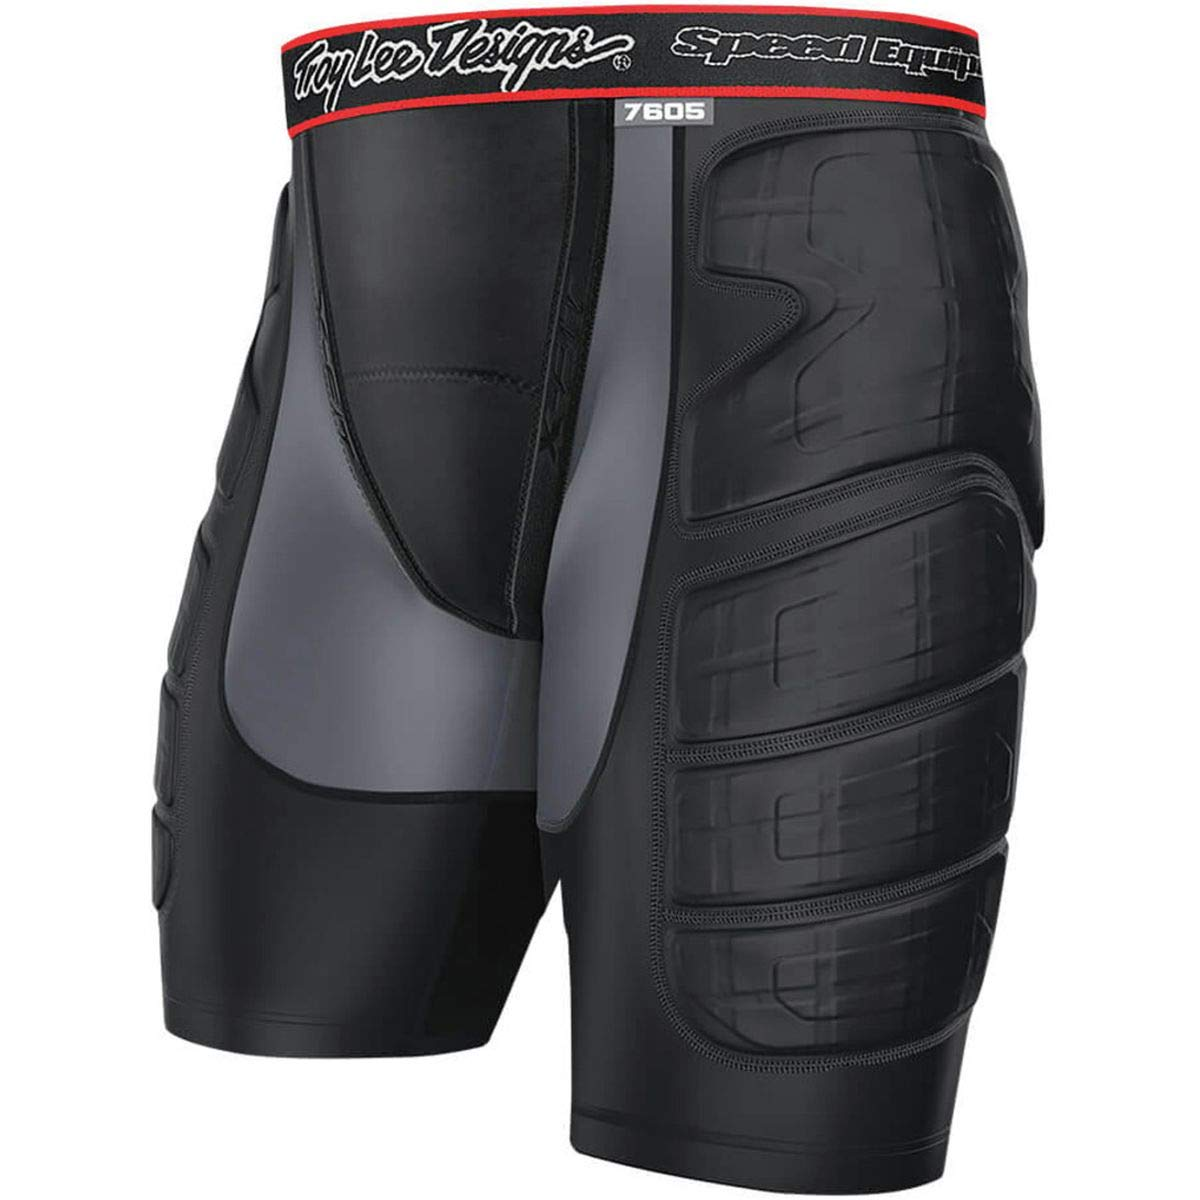 Troy Lee Designs 7605 Ultra Protective Short - Small by Troy Lee Designs (Image #1)